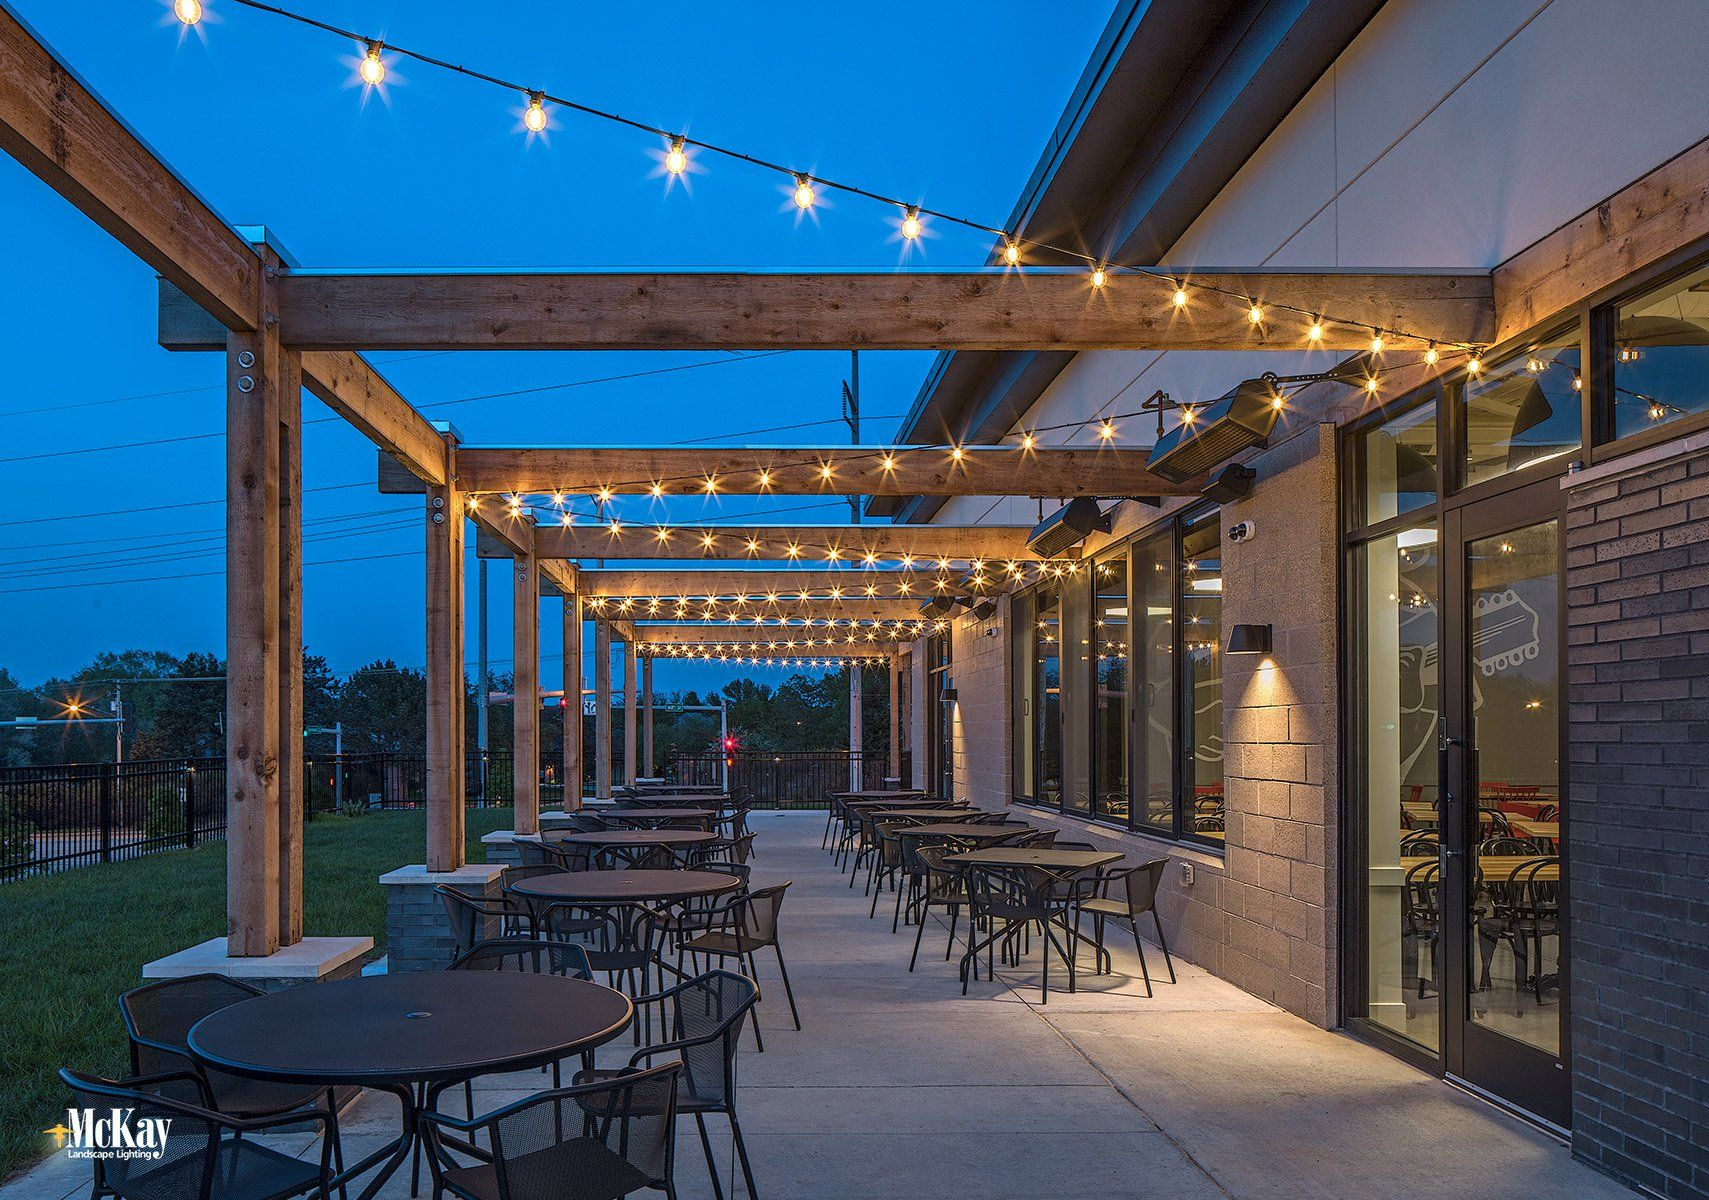 Pin On Outdoor Restaurant Patio Lighting La Casa West Omaha Nebraska